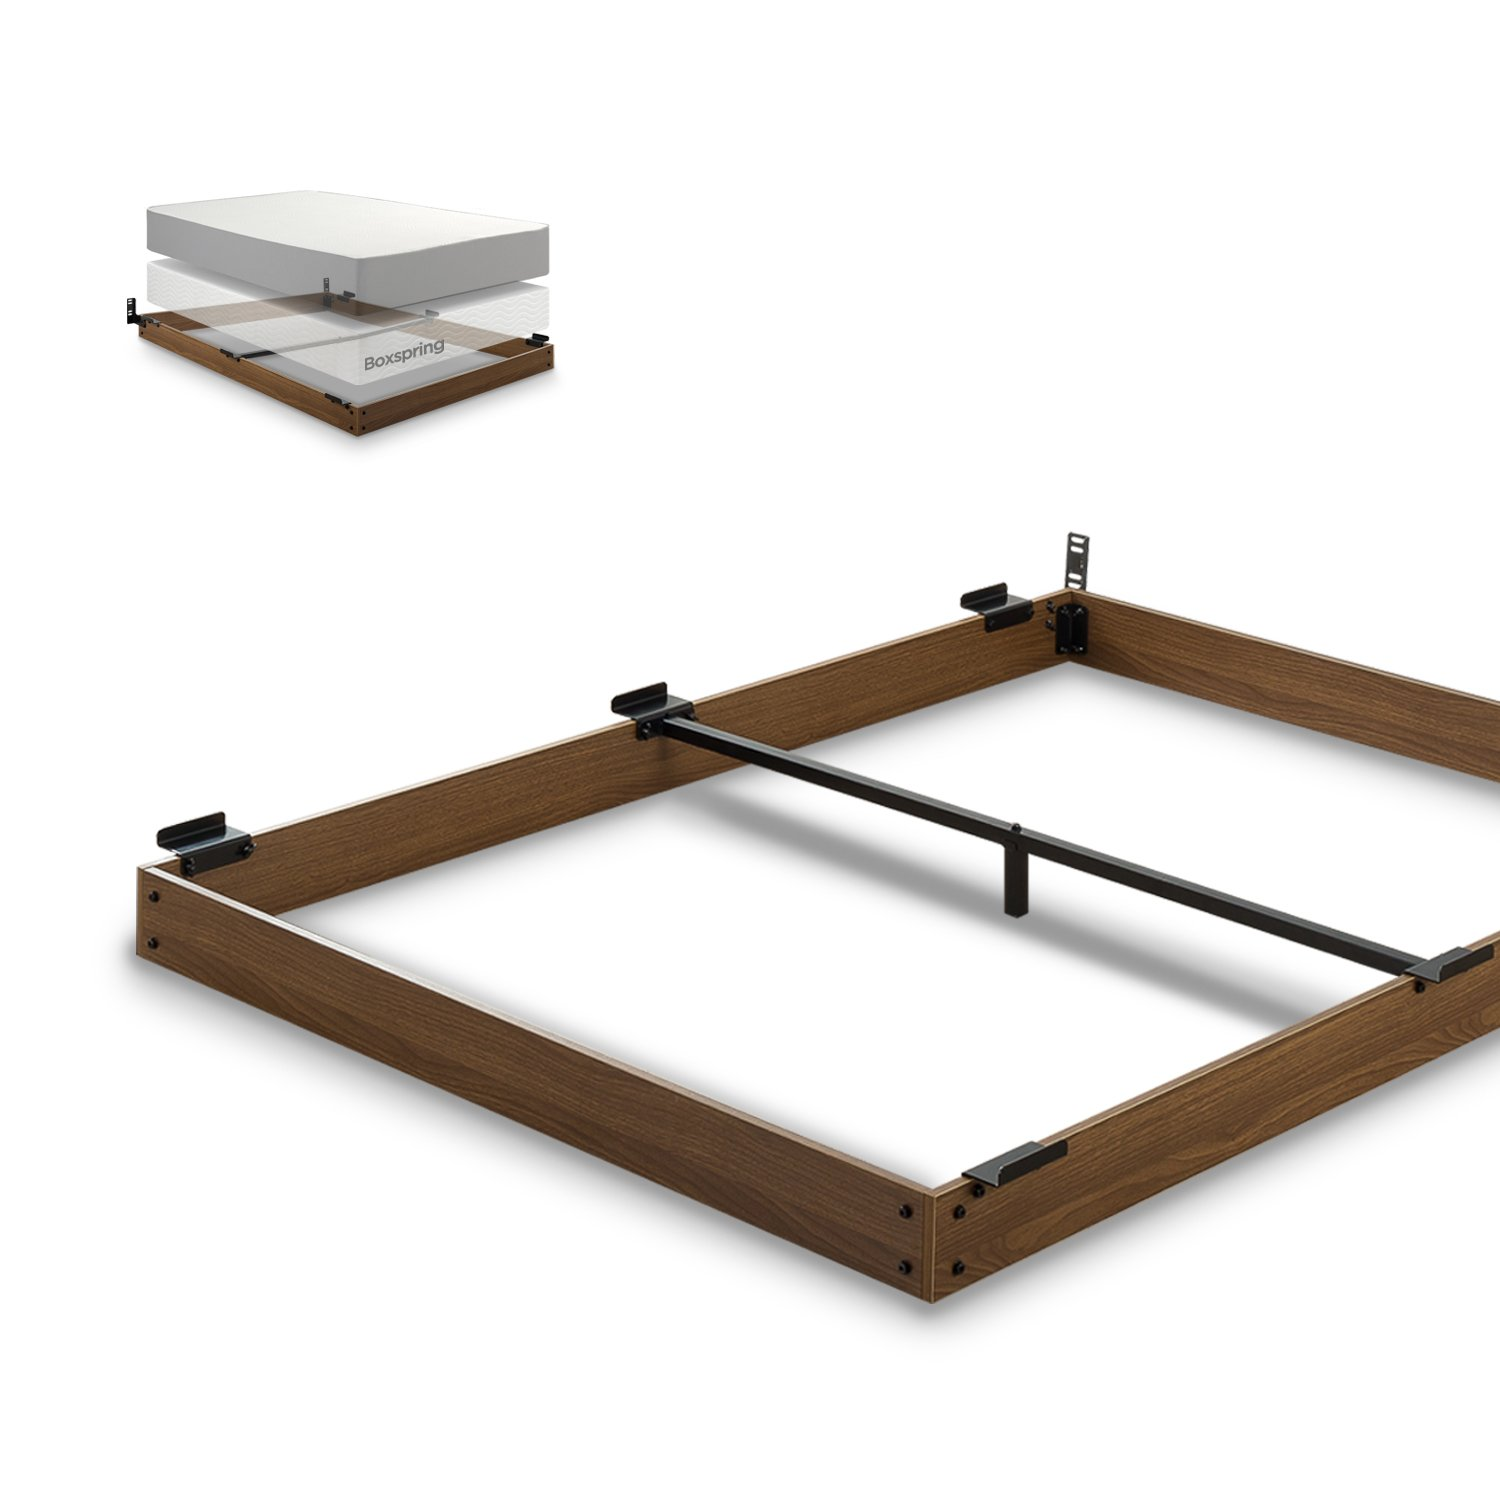 Zinus 5 Inch Wood Bed Frame for Box Spring & Mattress Set, Keep Pets from Beneath Your Bed, Queen by Zinus (Image #1)